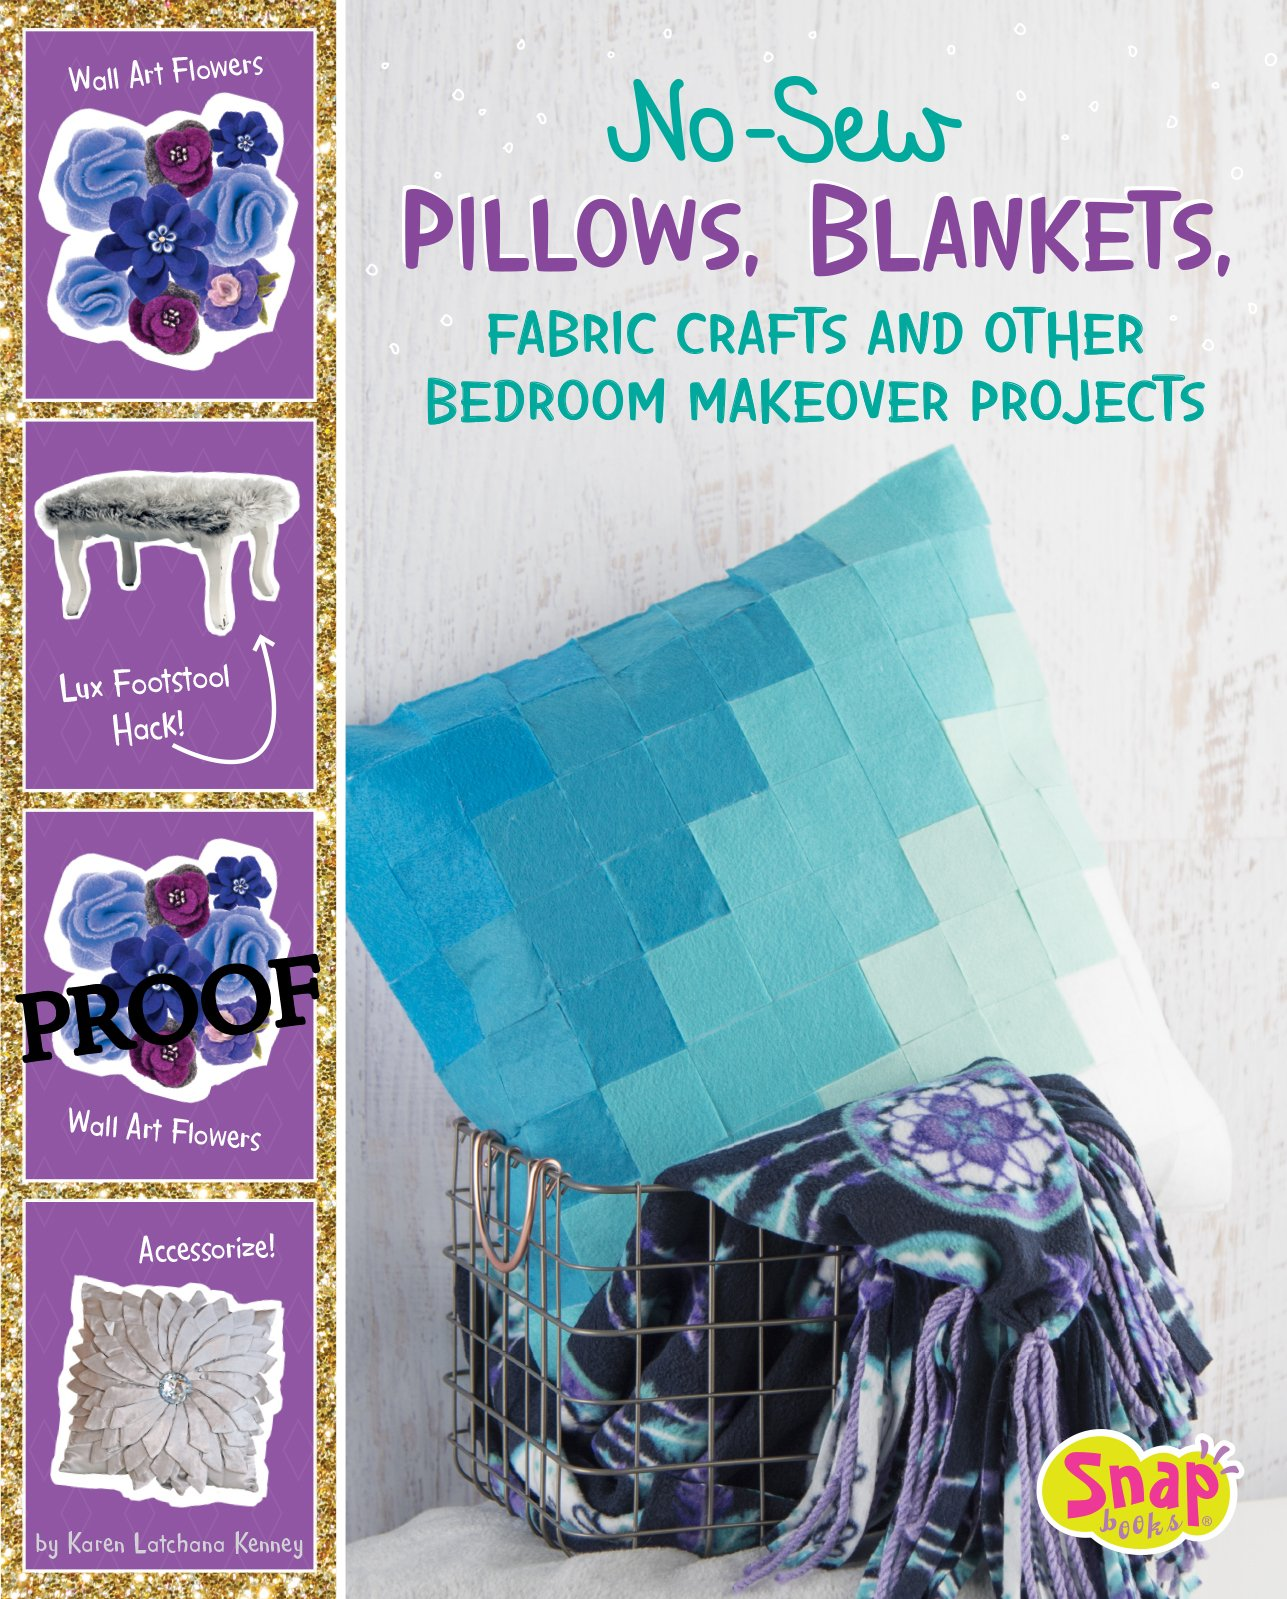 No-Sew Pillows, Blankets, Fabric Crafts, and Other Bedroom Makeover Projects (No Sew, No Problem)